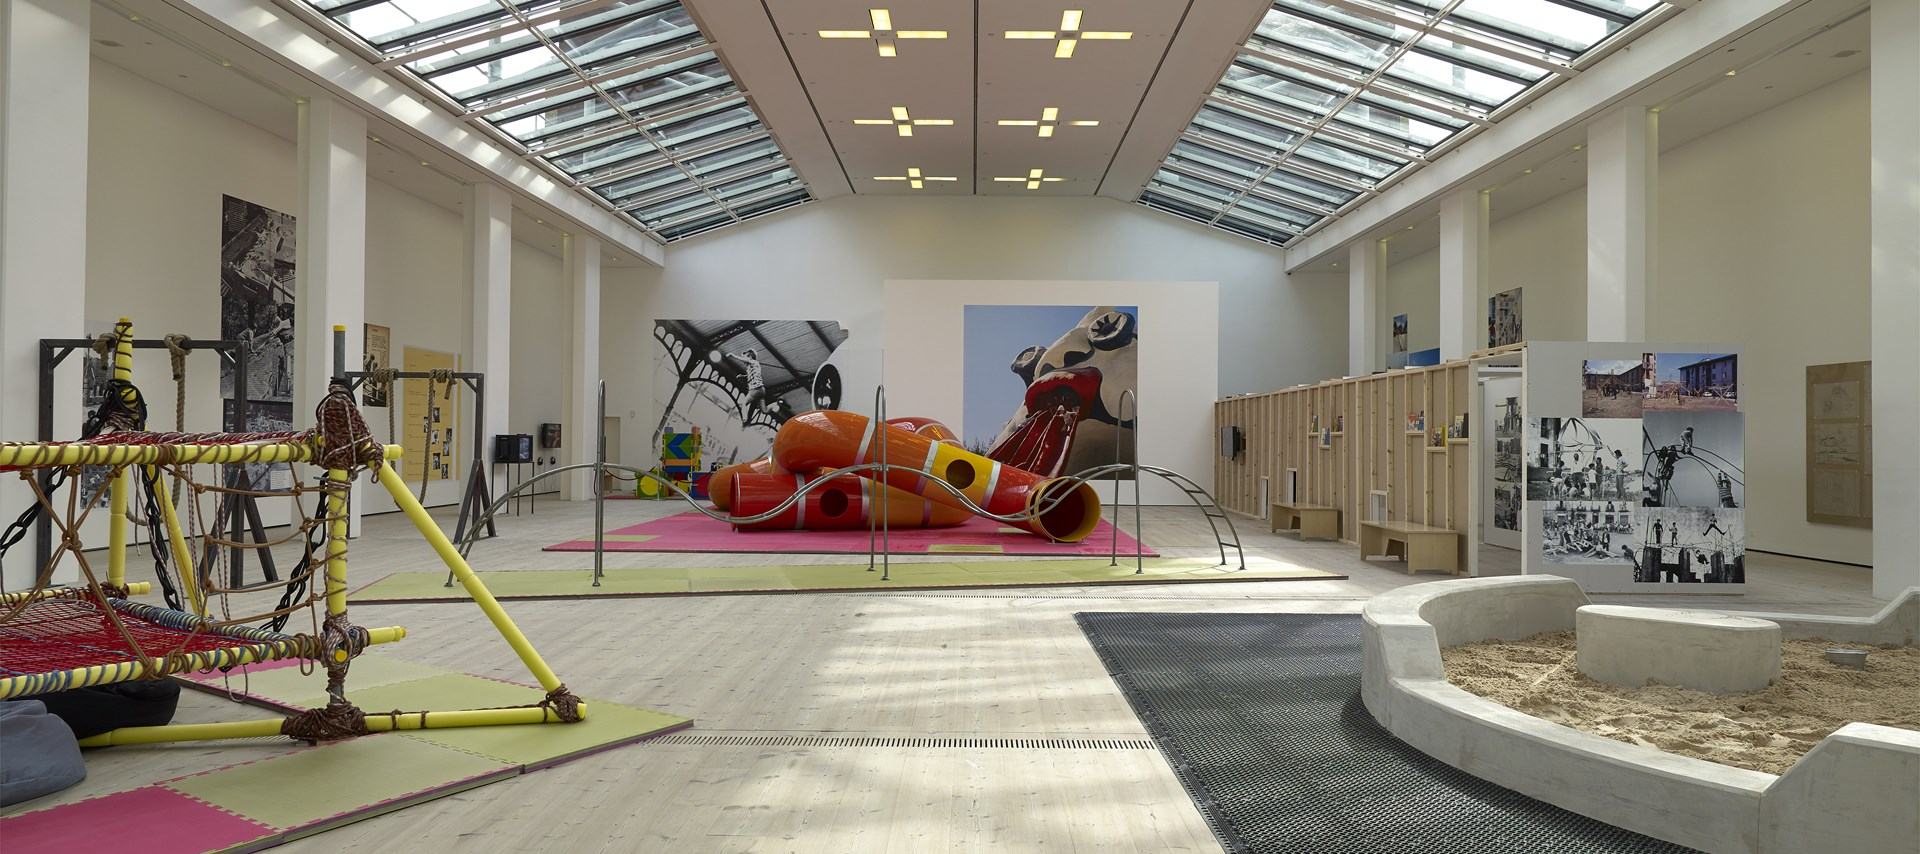 The Playground Project: Installation view by John McKenzie. © BALTIC 2016